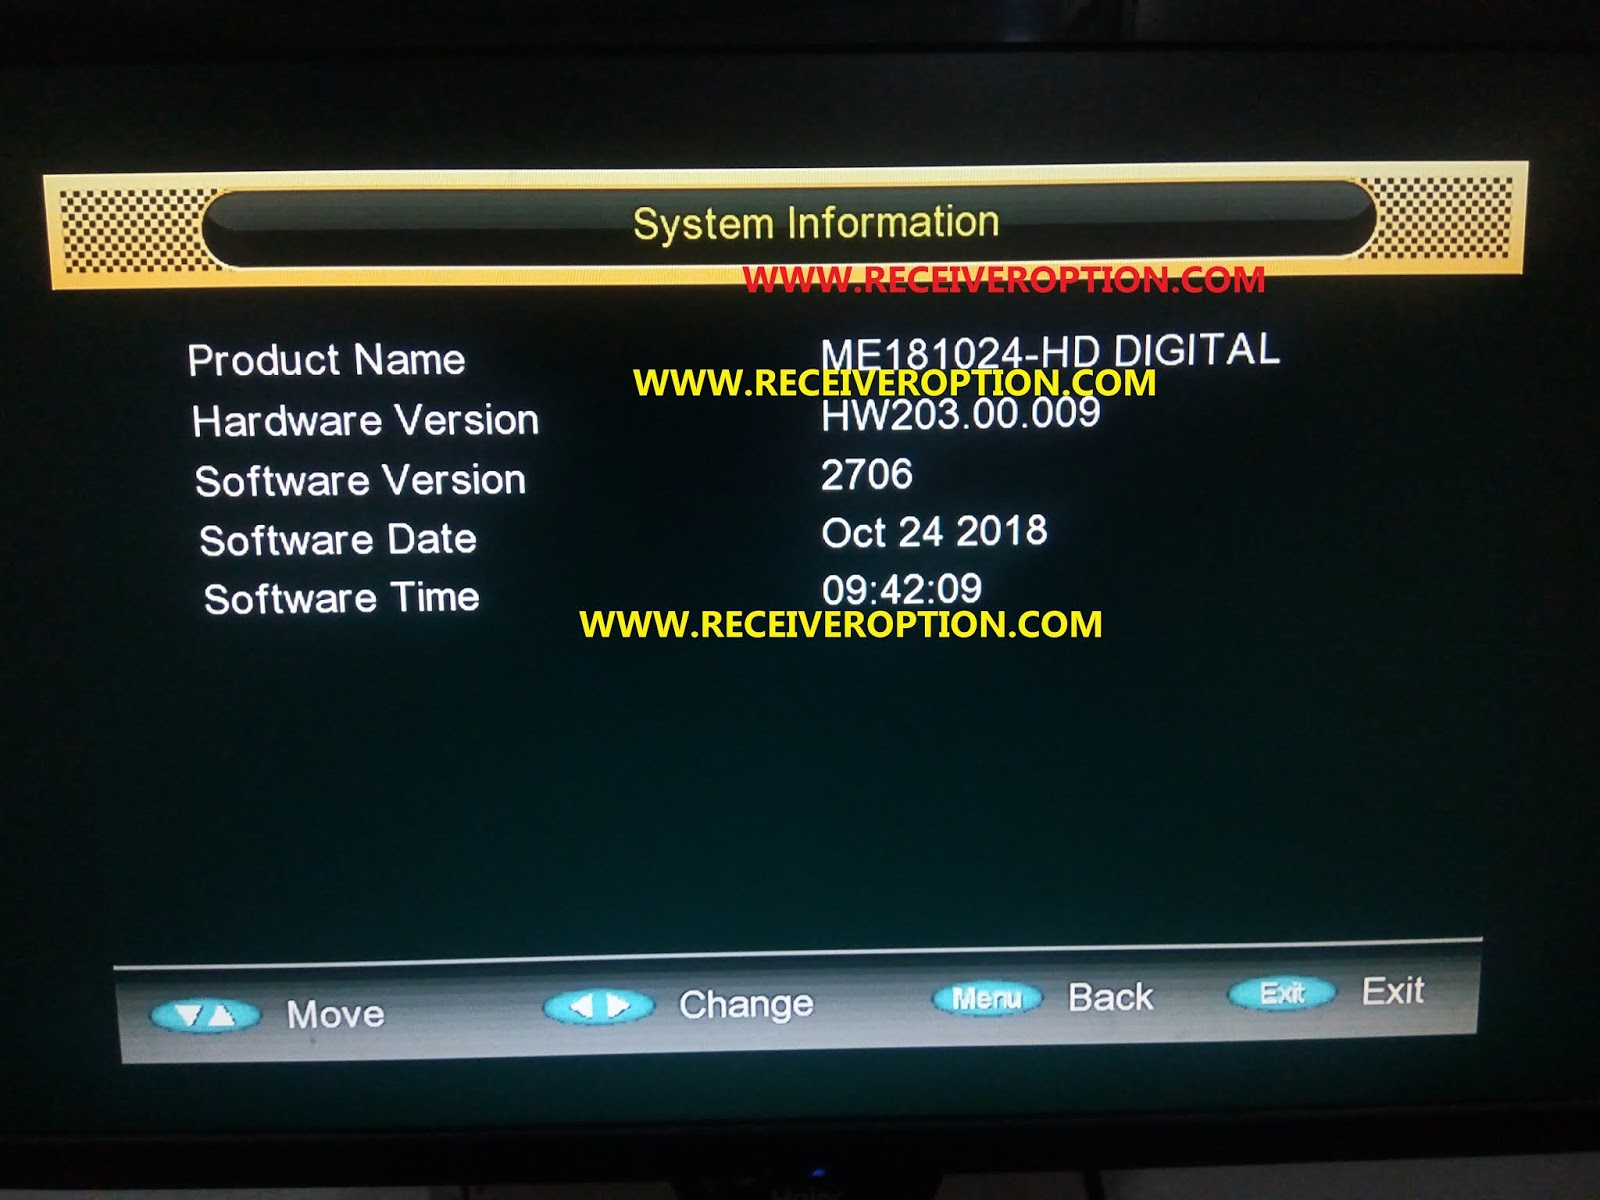 GX6605S BOARD HW203 00 009 POWERVU KEY NEW SOFTWARE - HOW TO ENTER